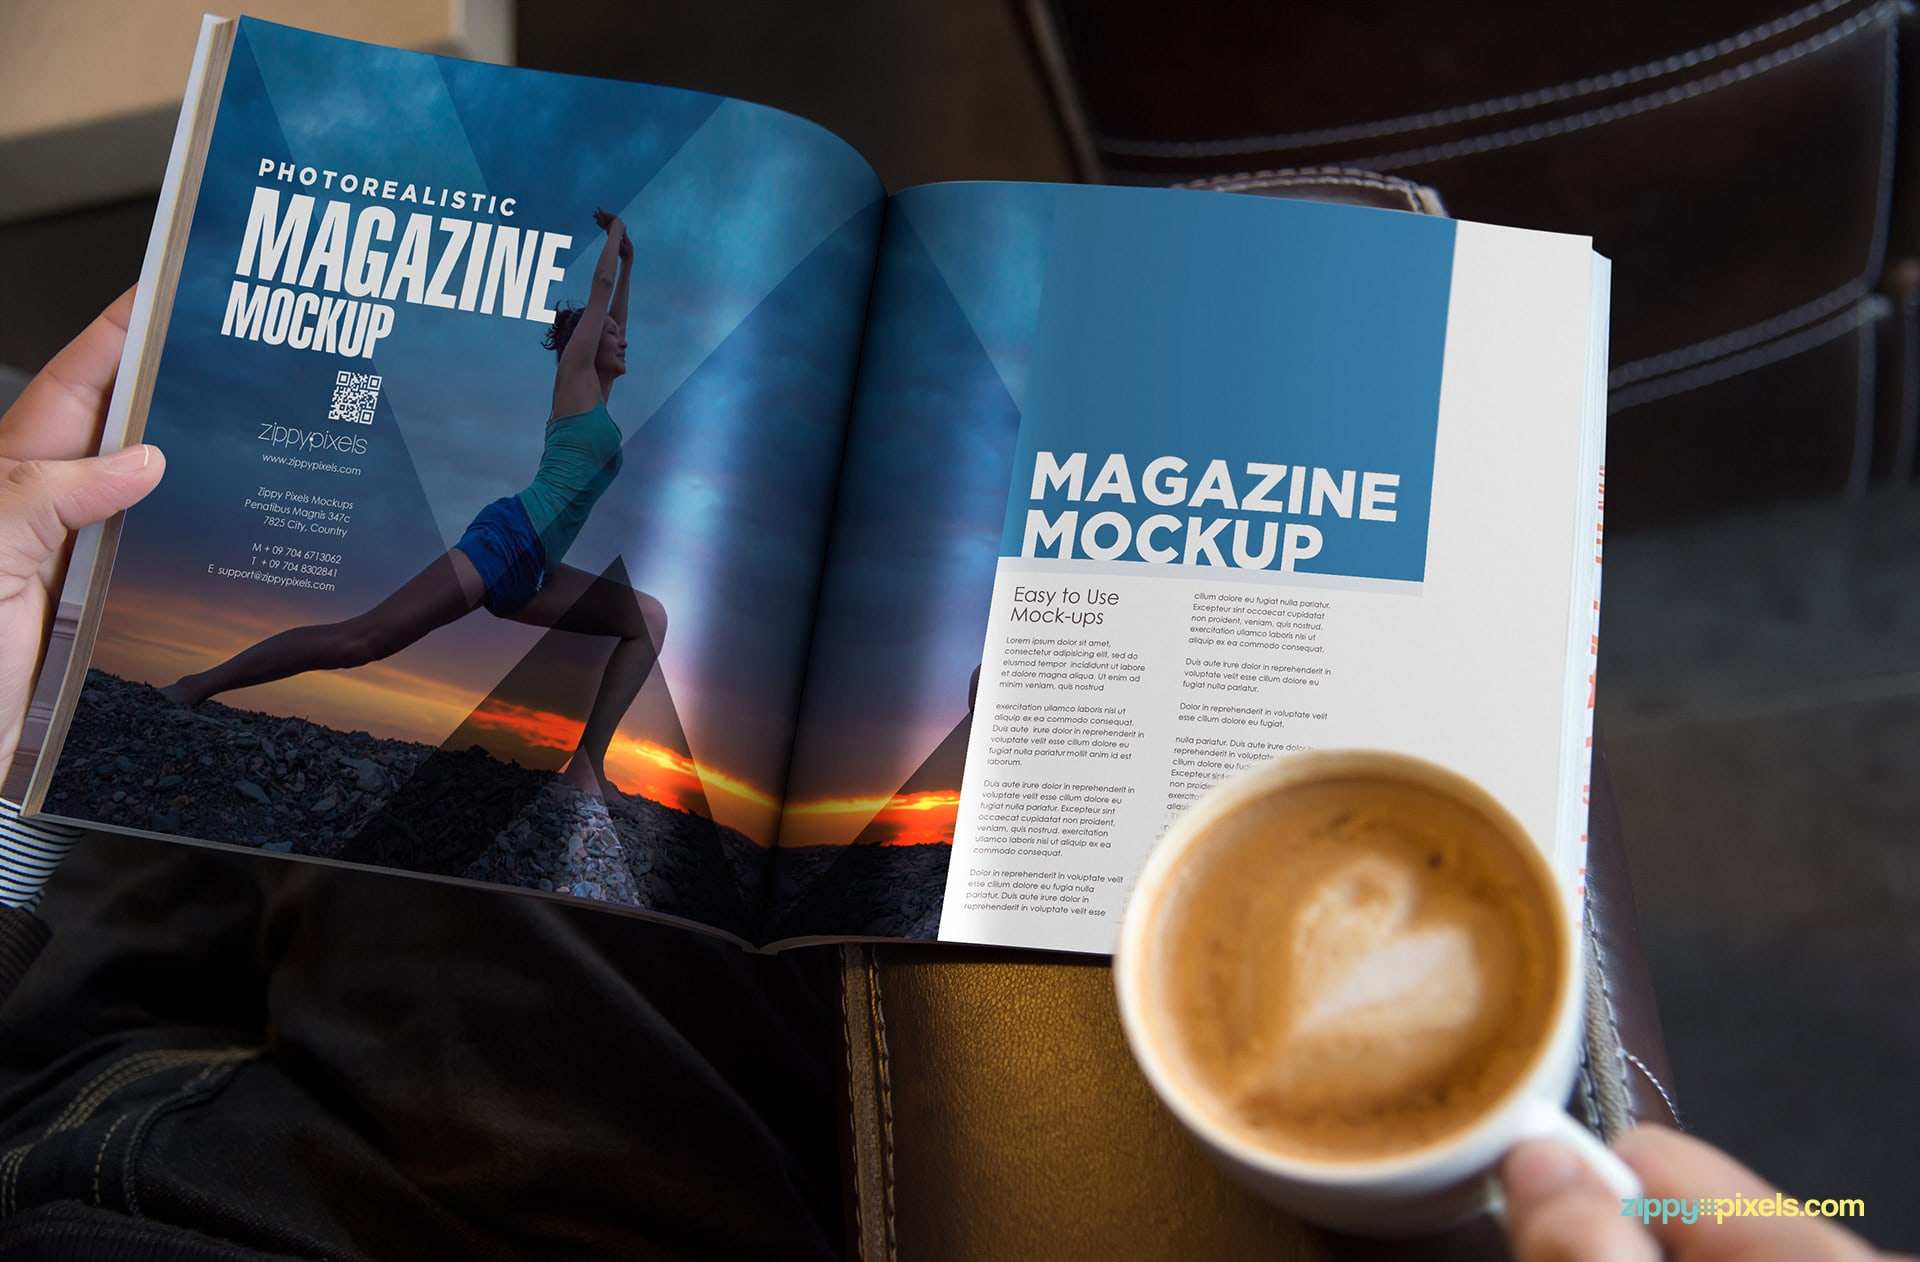 sqaure mag mockups with different angles and arrangements